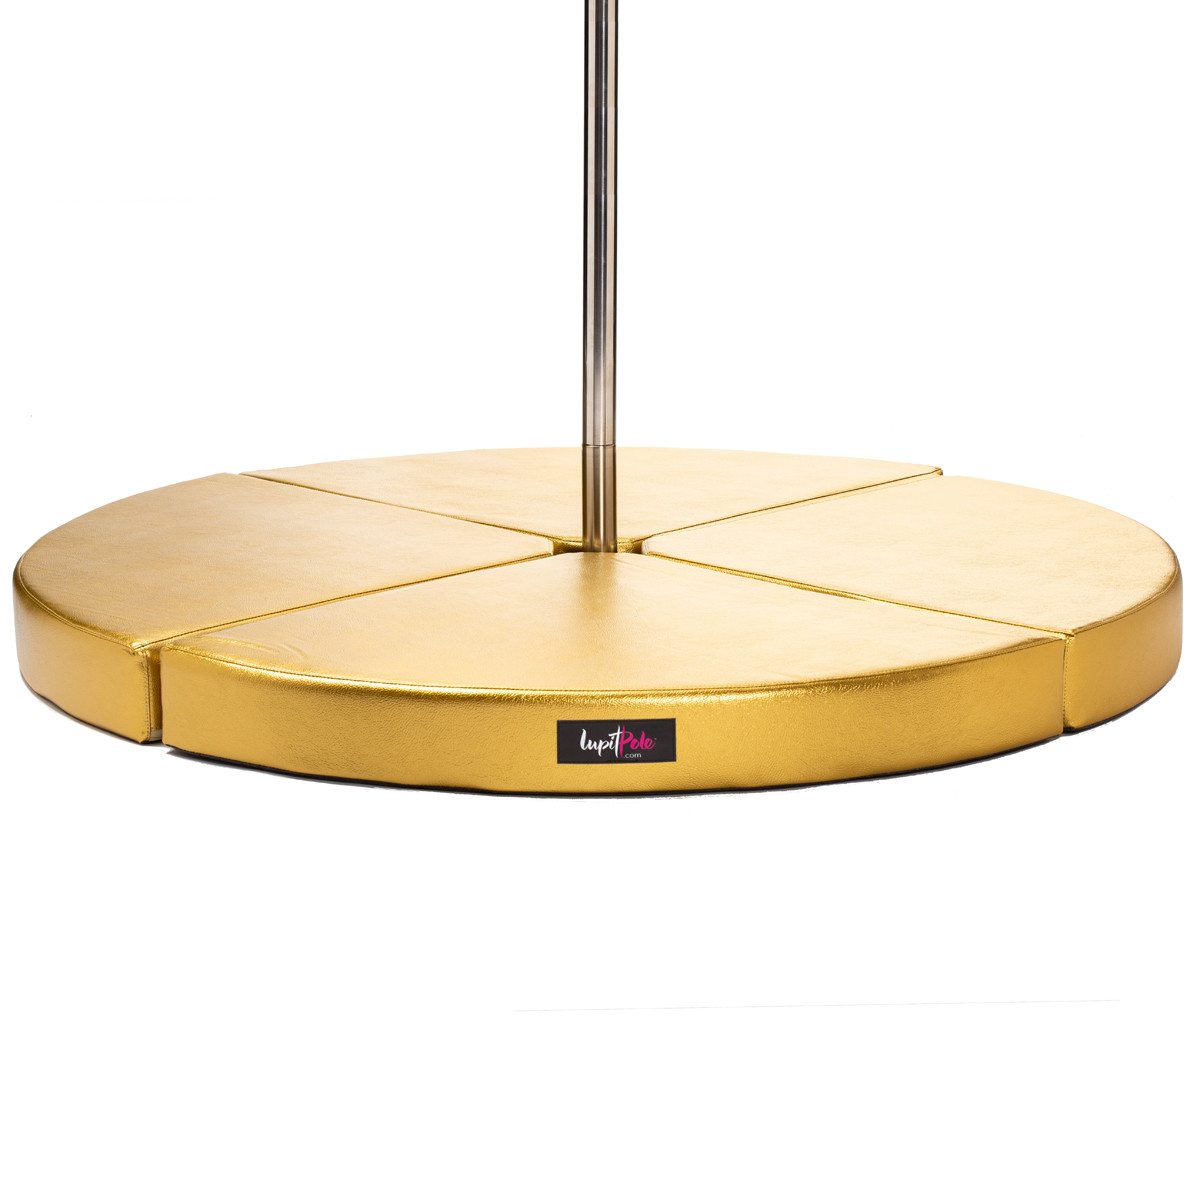 Crash Mats Australia Lupit Premium Gold Round Pole Dance Crash Mats